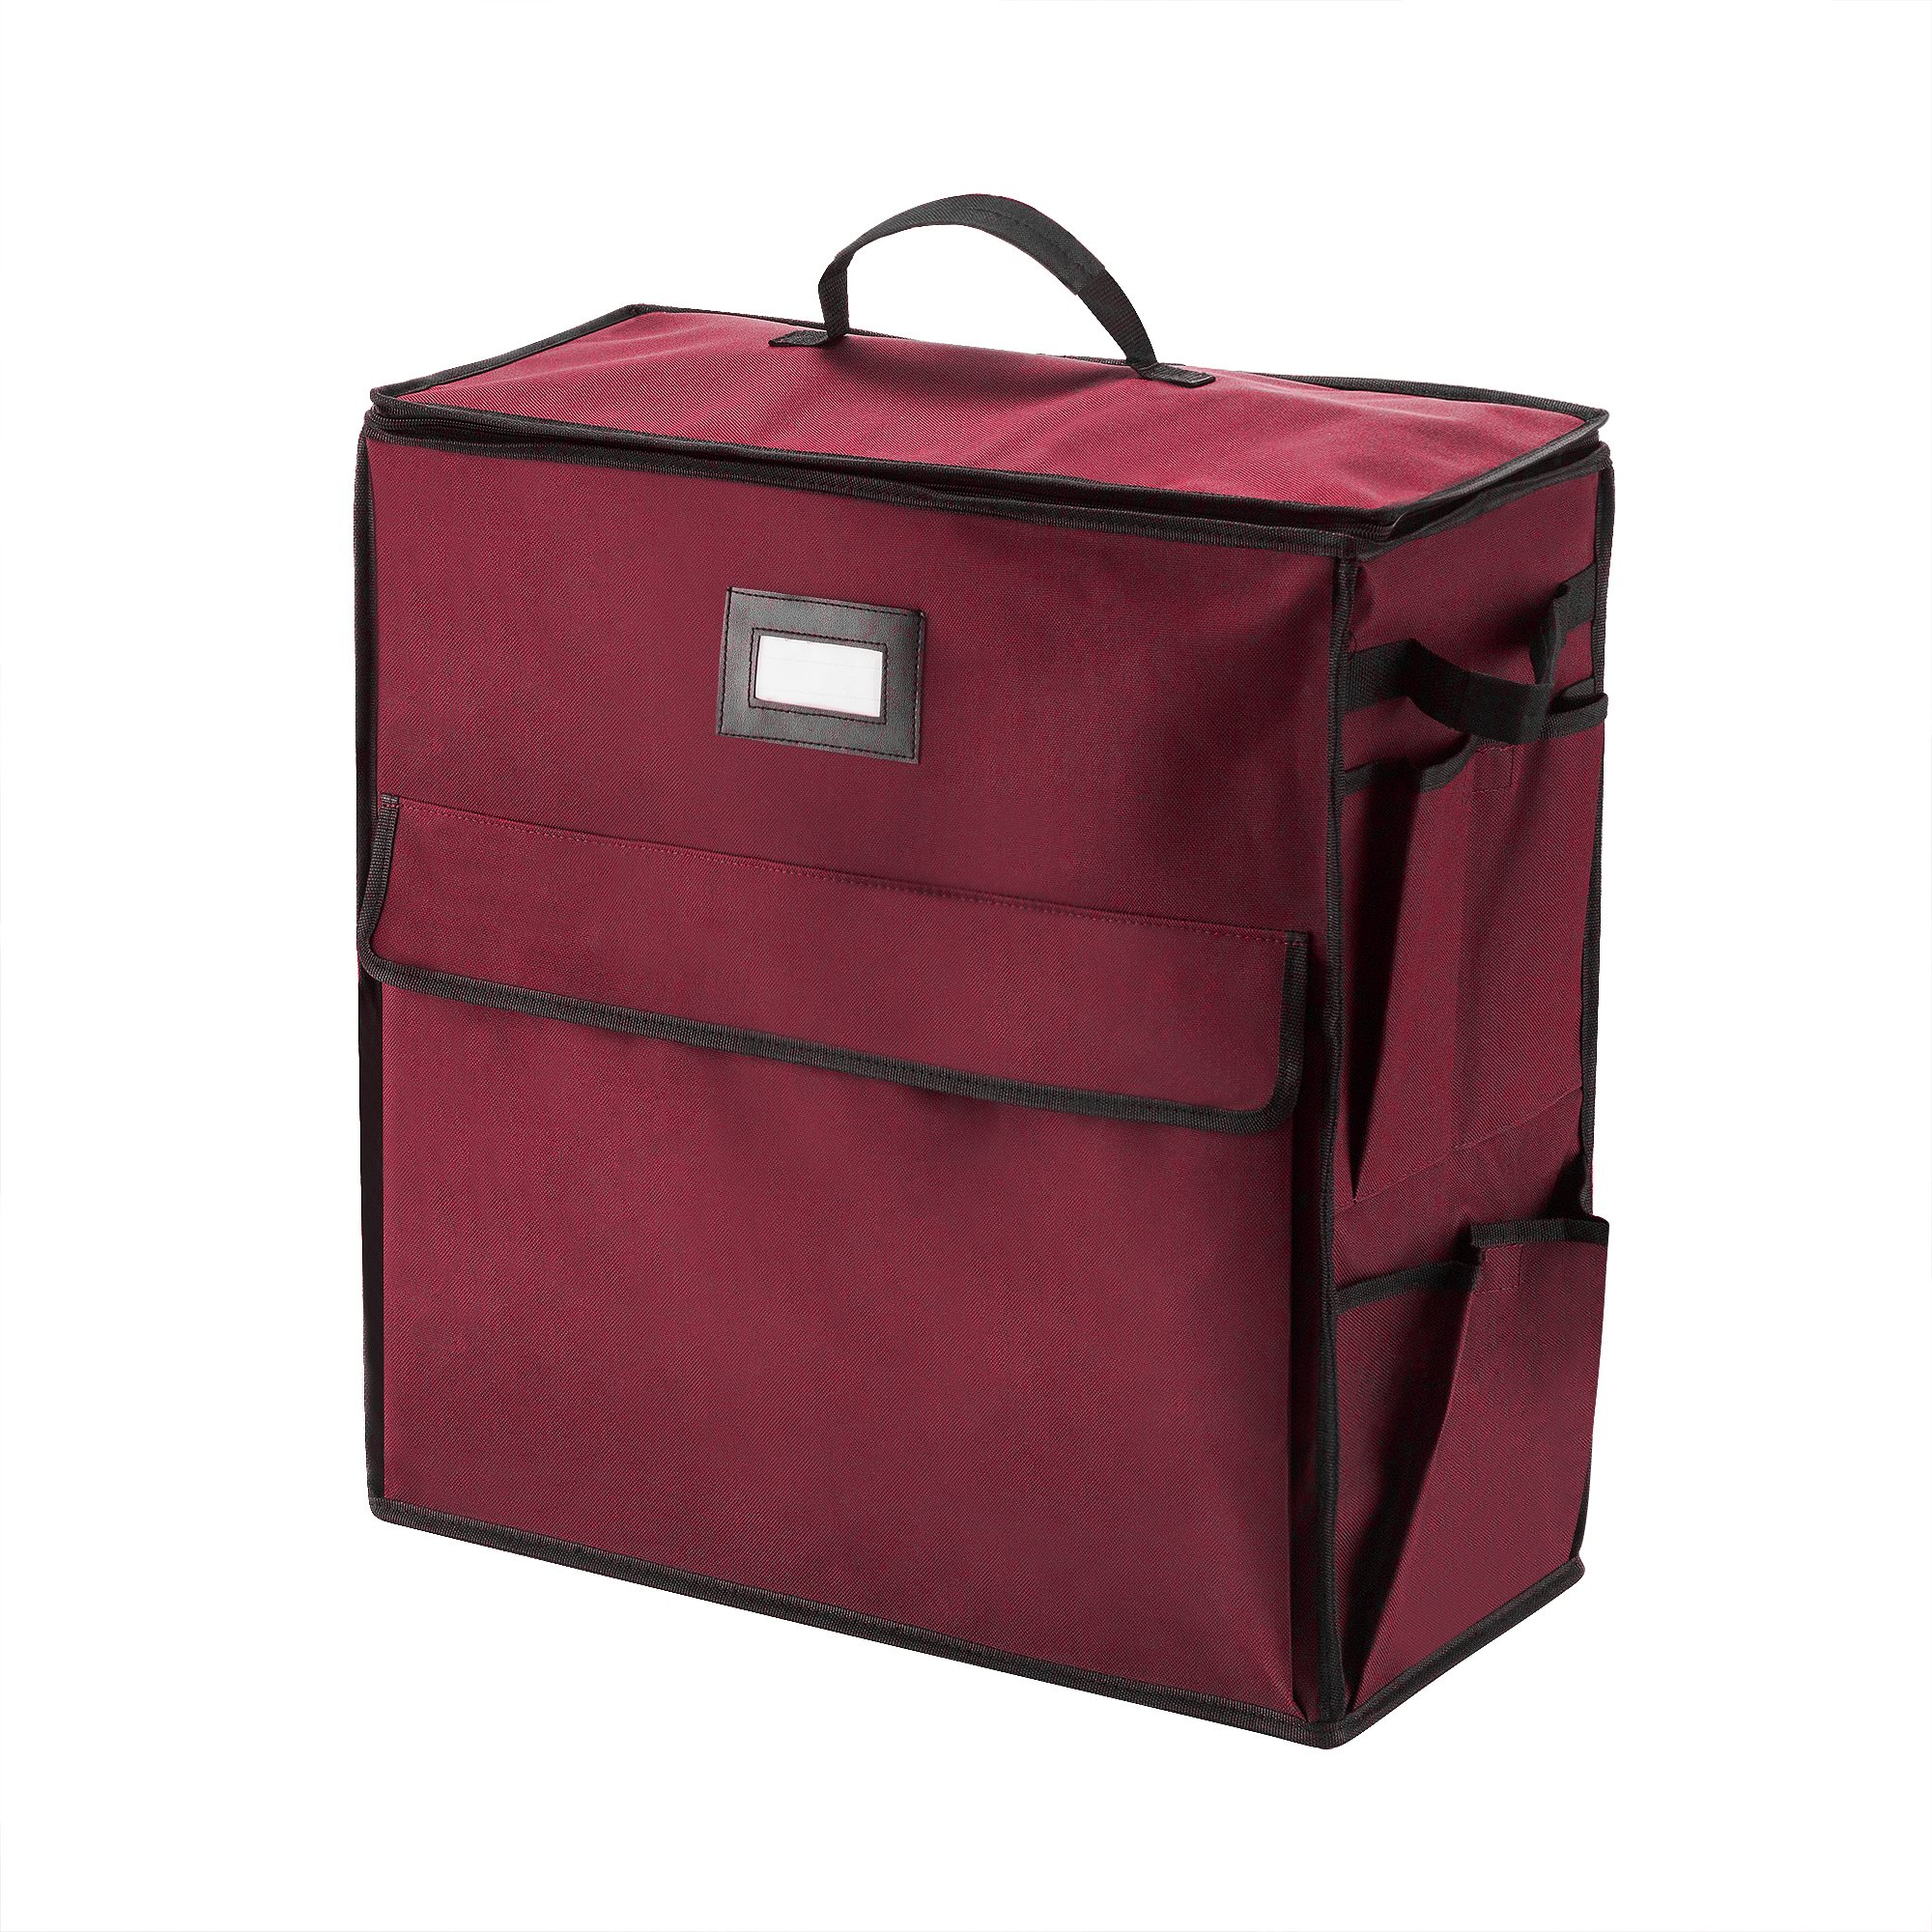 Elf Stor 83-DT5052 Ultimate Organizer Holiday Storage for Gift Wrap and Bags